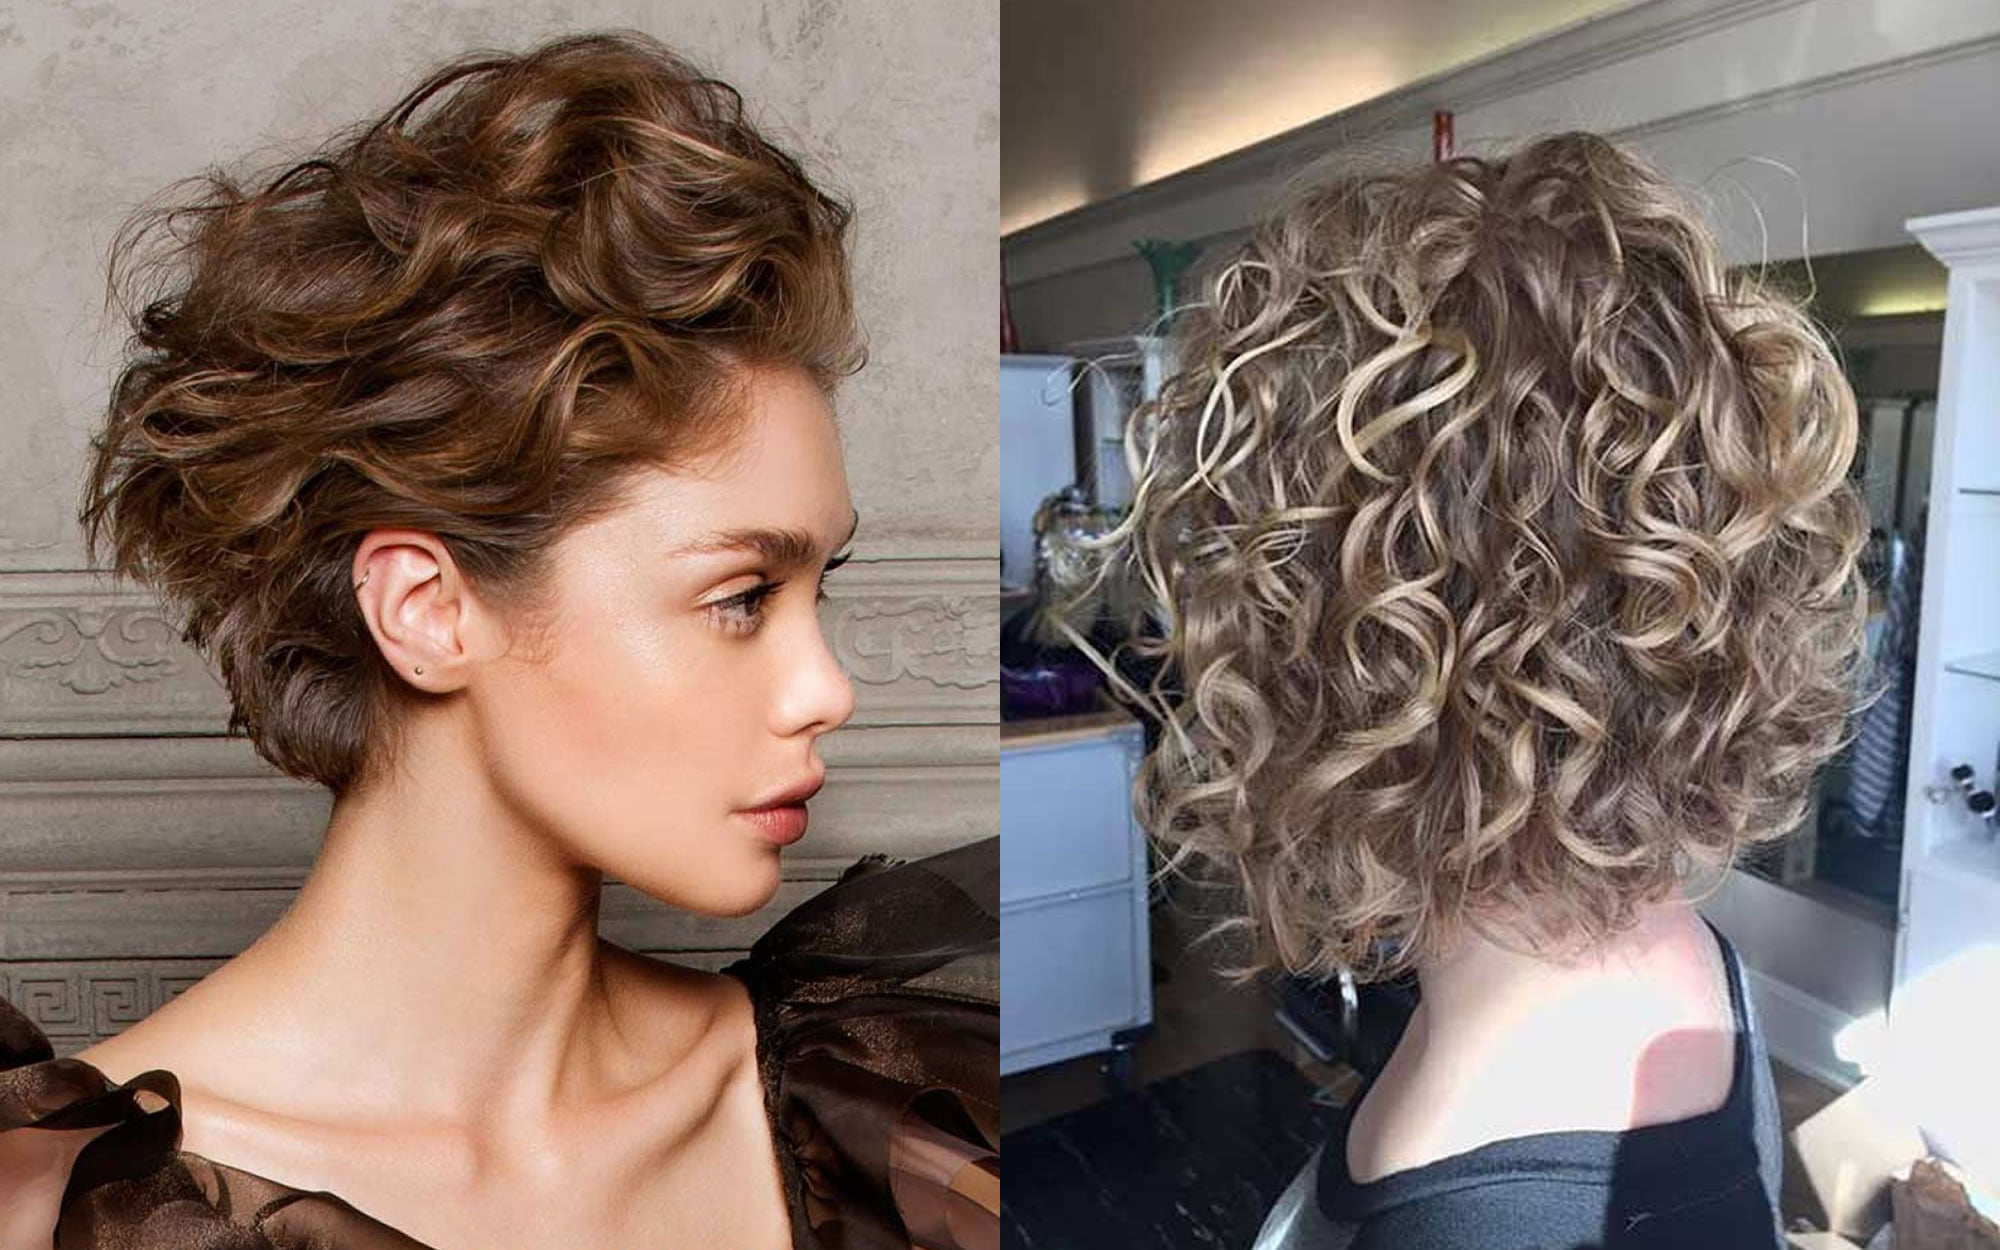 Medium hairstyles 2019 – Latest curly & wavy haircuts for ...